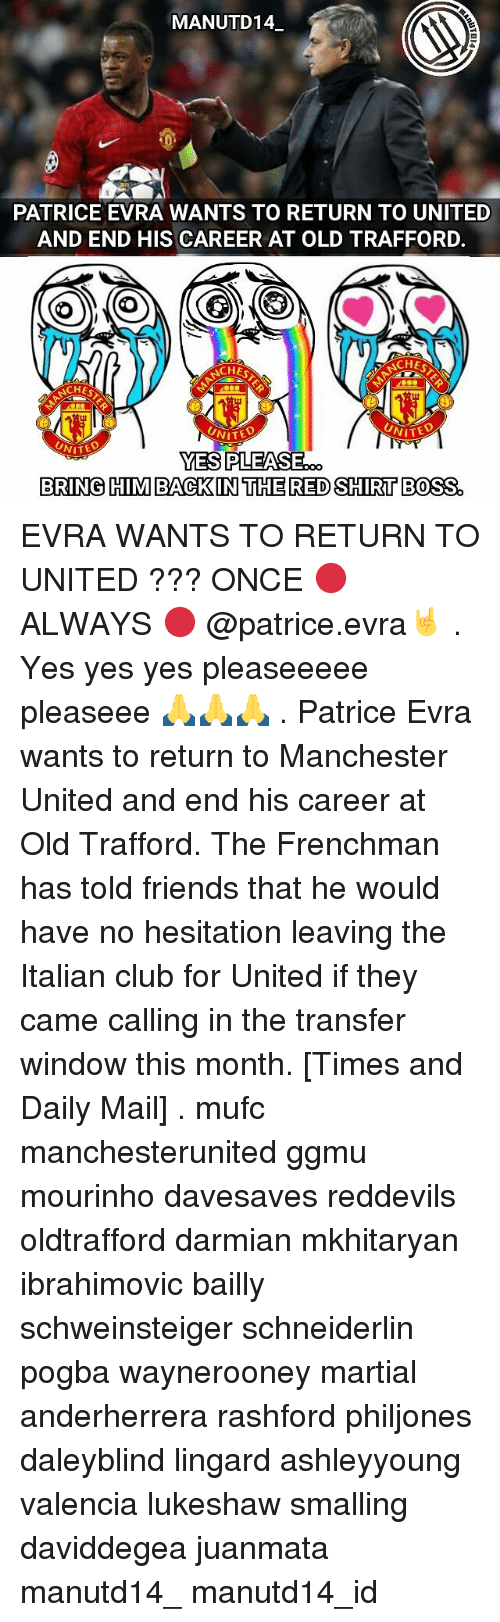 Memes, Windows, and Manchester United: MANUTD14.  PATRICE EVRA WANTS TO RETURN TO UNITED  AND END HIS CAREER AT OLD TRAFFORD.  ACHES  CHEF  UNITE  NITED  NITED  YES PLEASE  BRING HIM BACK IN THE RED SHIRT BOSS EVRA WANTS TO RETURN TO UNITED ??? ONCE 🔴 ALWAYS 🔴 @patrice.evra🤘 . Yes yes yes pleaseeeee pleaseee 🙏🙏🙏 . Patrice Evra wants to return to Manchester United and end his career at Old Trafford. The Frenchman has told friends that he would have no hesitation leaving the Italian club for United if they came calling in the transfer window this month. [Times and Daily Mail] . mufc manchesterunited ggmu mourinho davesaves reddevils oldtrafford darmian mkhitaryan ibrahimovic bailly schweinsteiger schneiderlin pogba waynerooney martial anderherrera rashford philjones daleyblind lingard ashleyyoung valencia lukeshaw smalling daviddegea juanmata manutd14_ manutd14_id